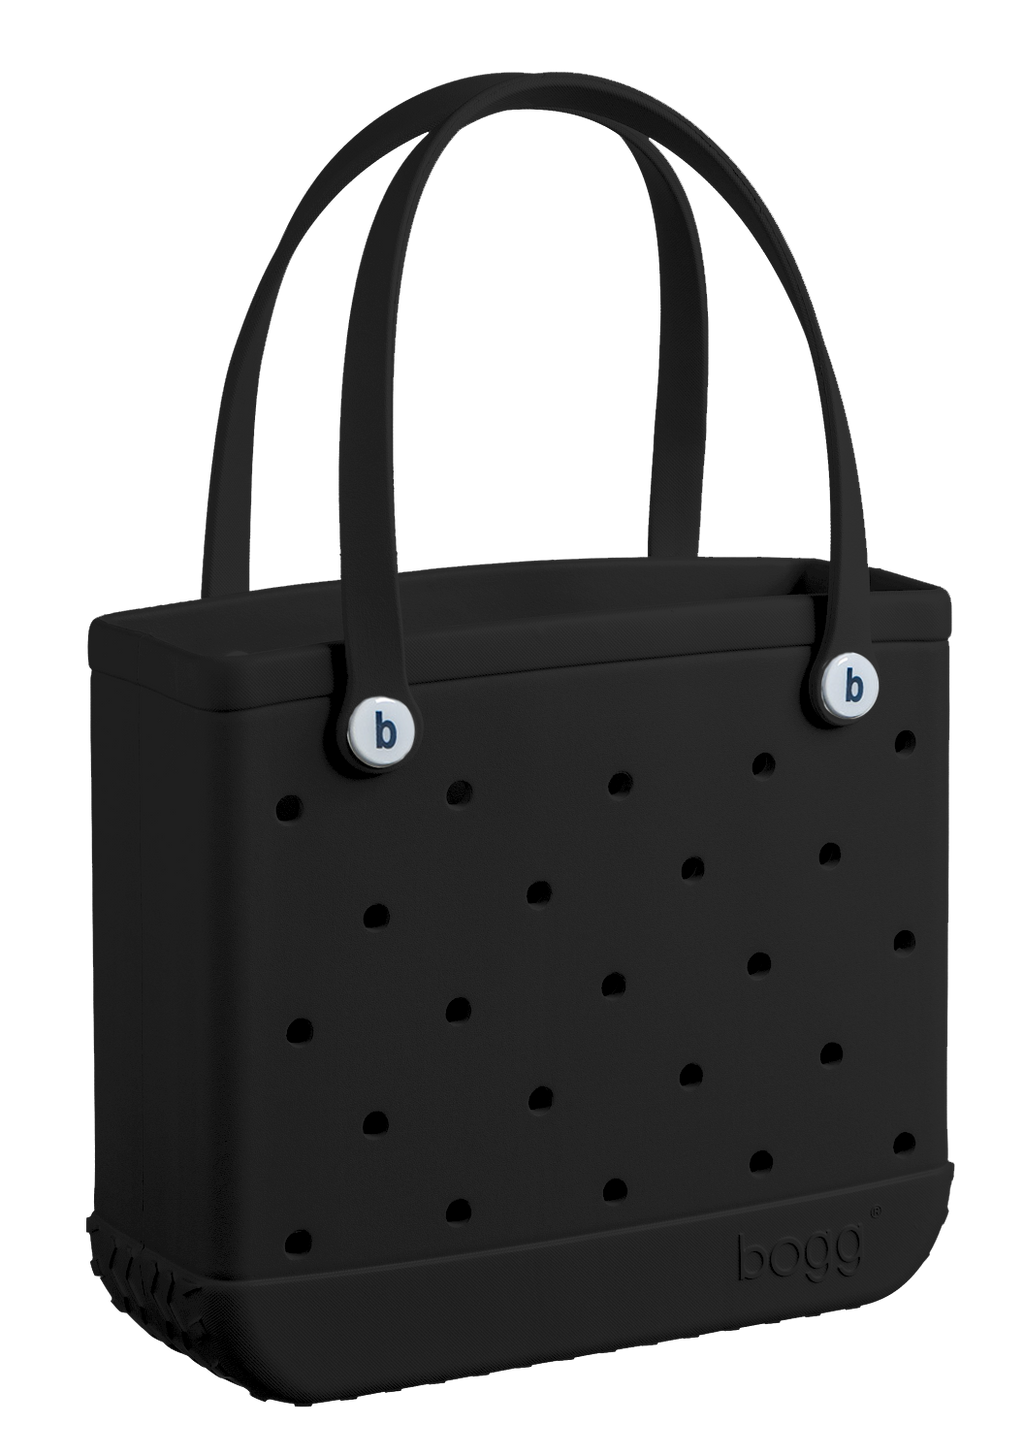 Baby Bogg Bag - Small Tote, Black (AVAILABLE NOW) - Monogram Market